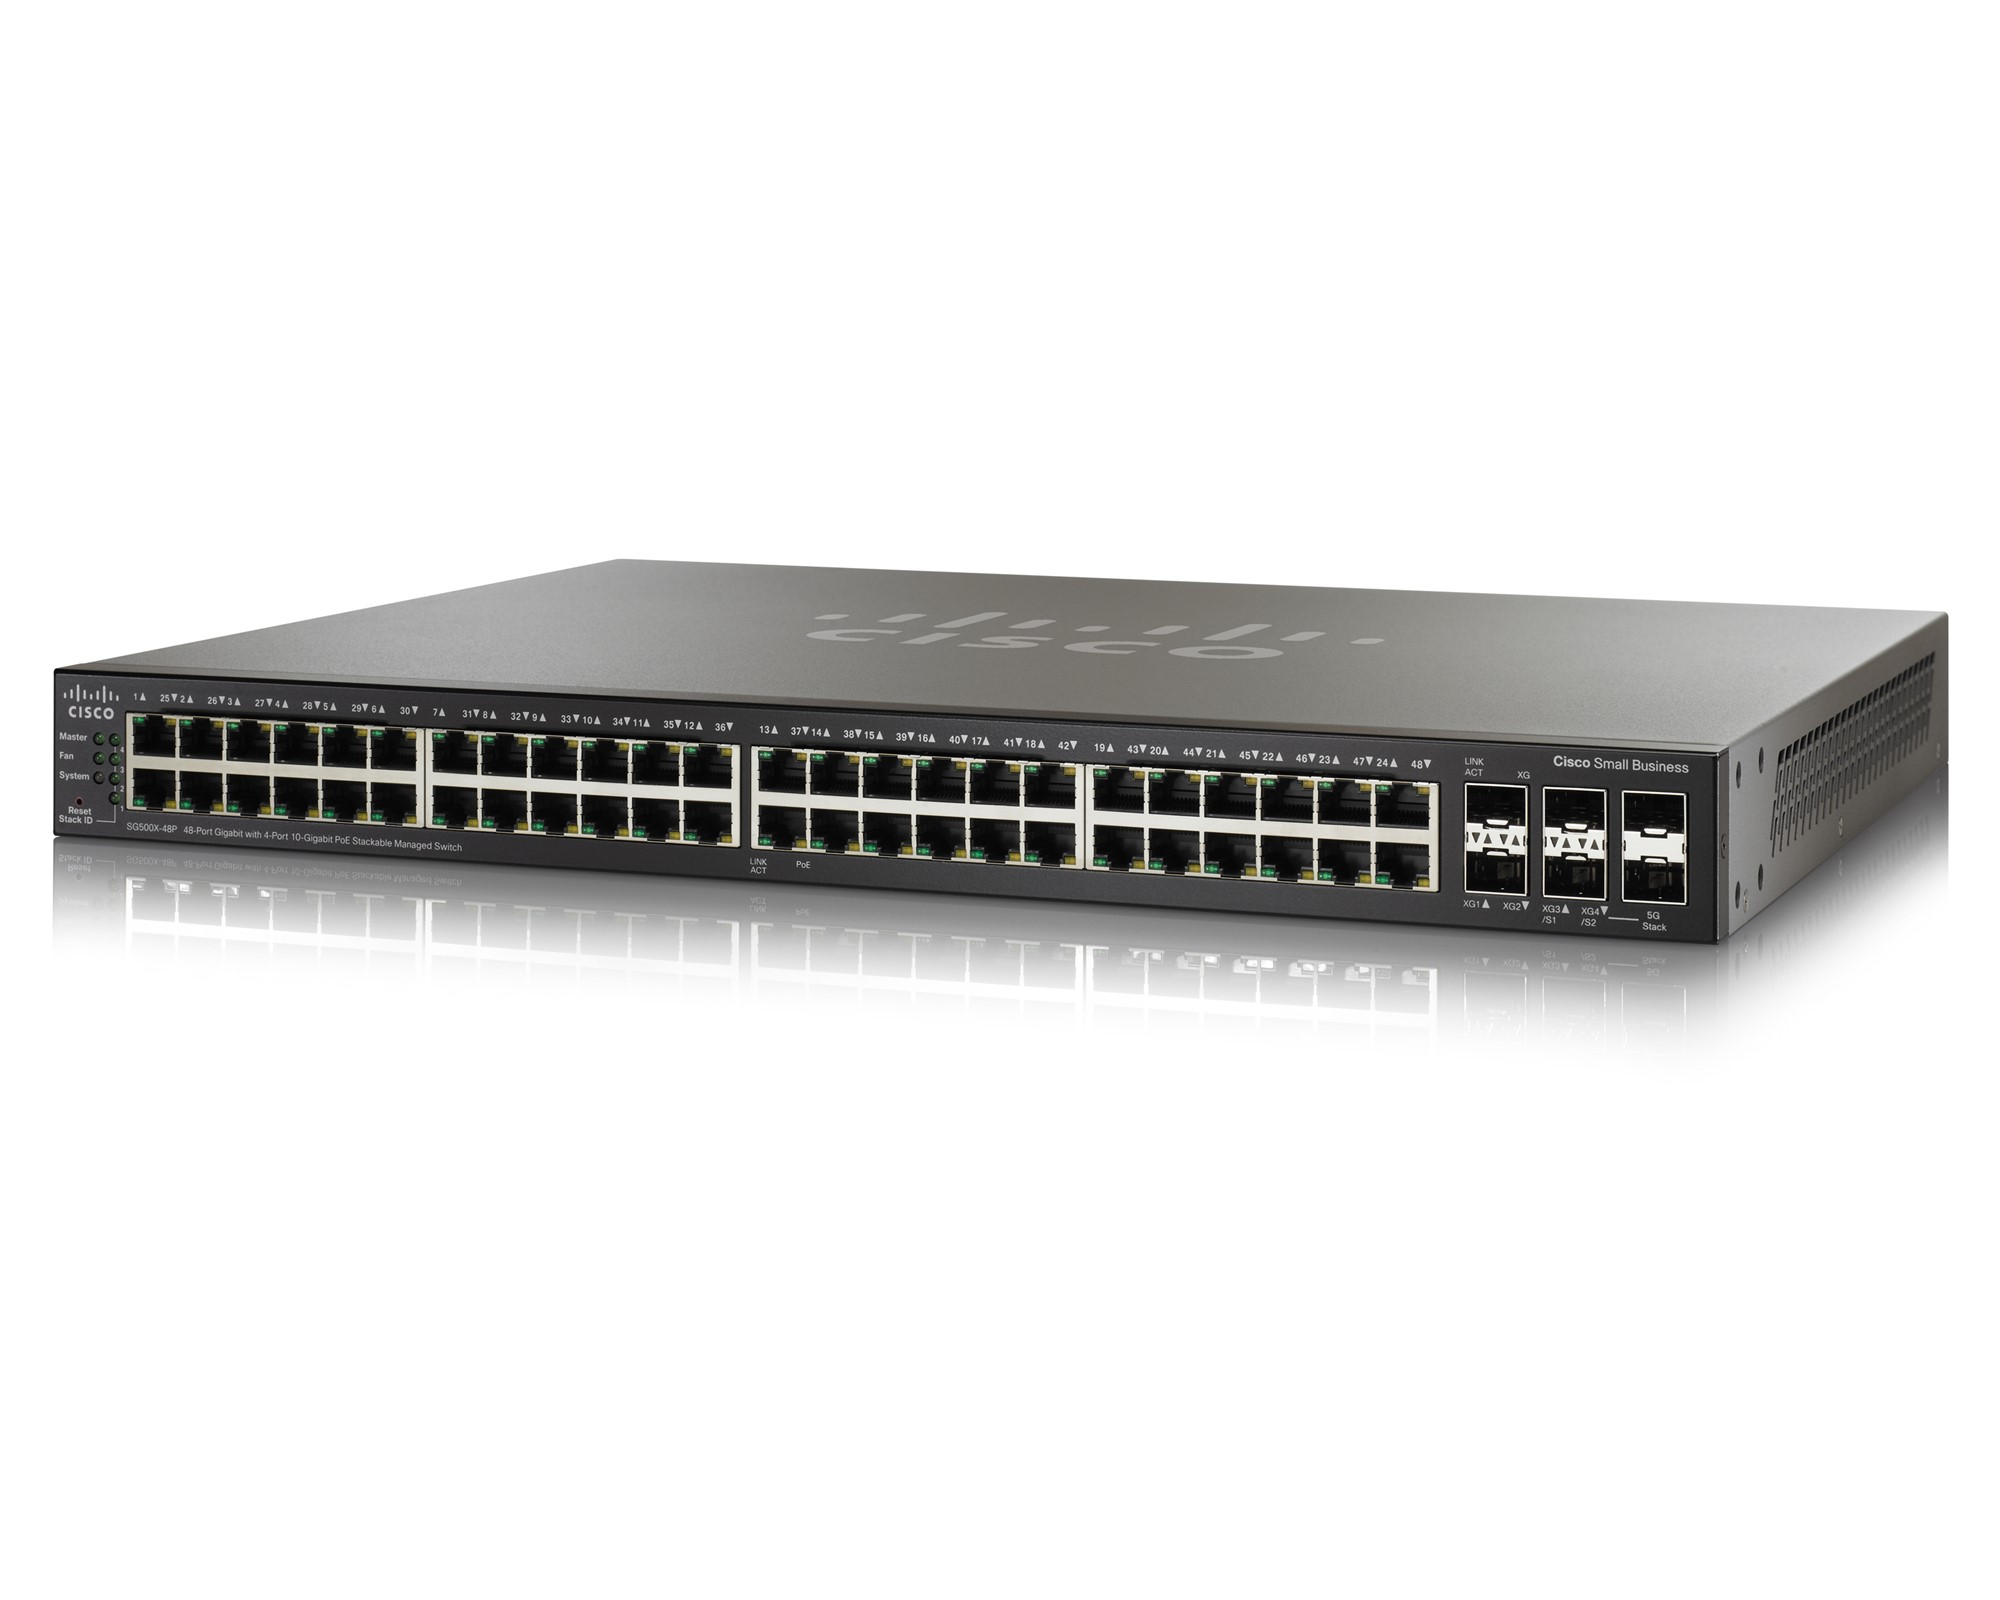 CISCO SG500X-48P-K9-G5 SMALL BUSINESS 500X SERIES SWITCH